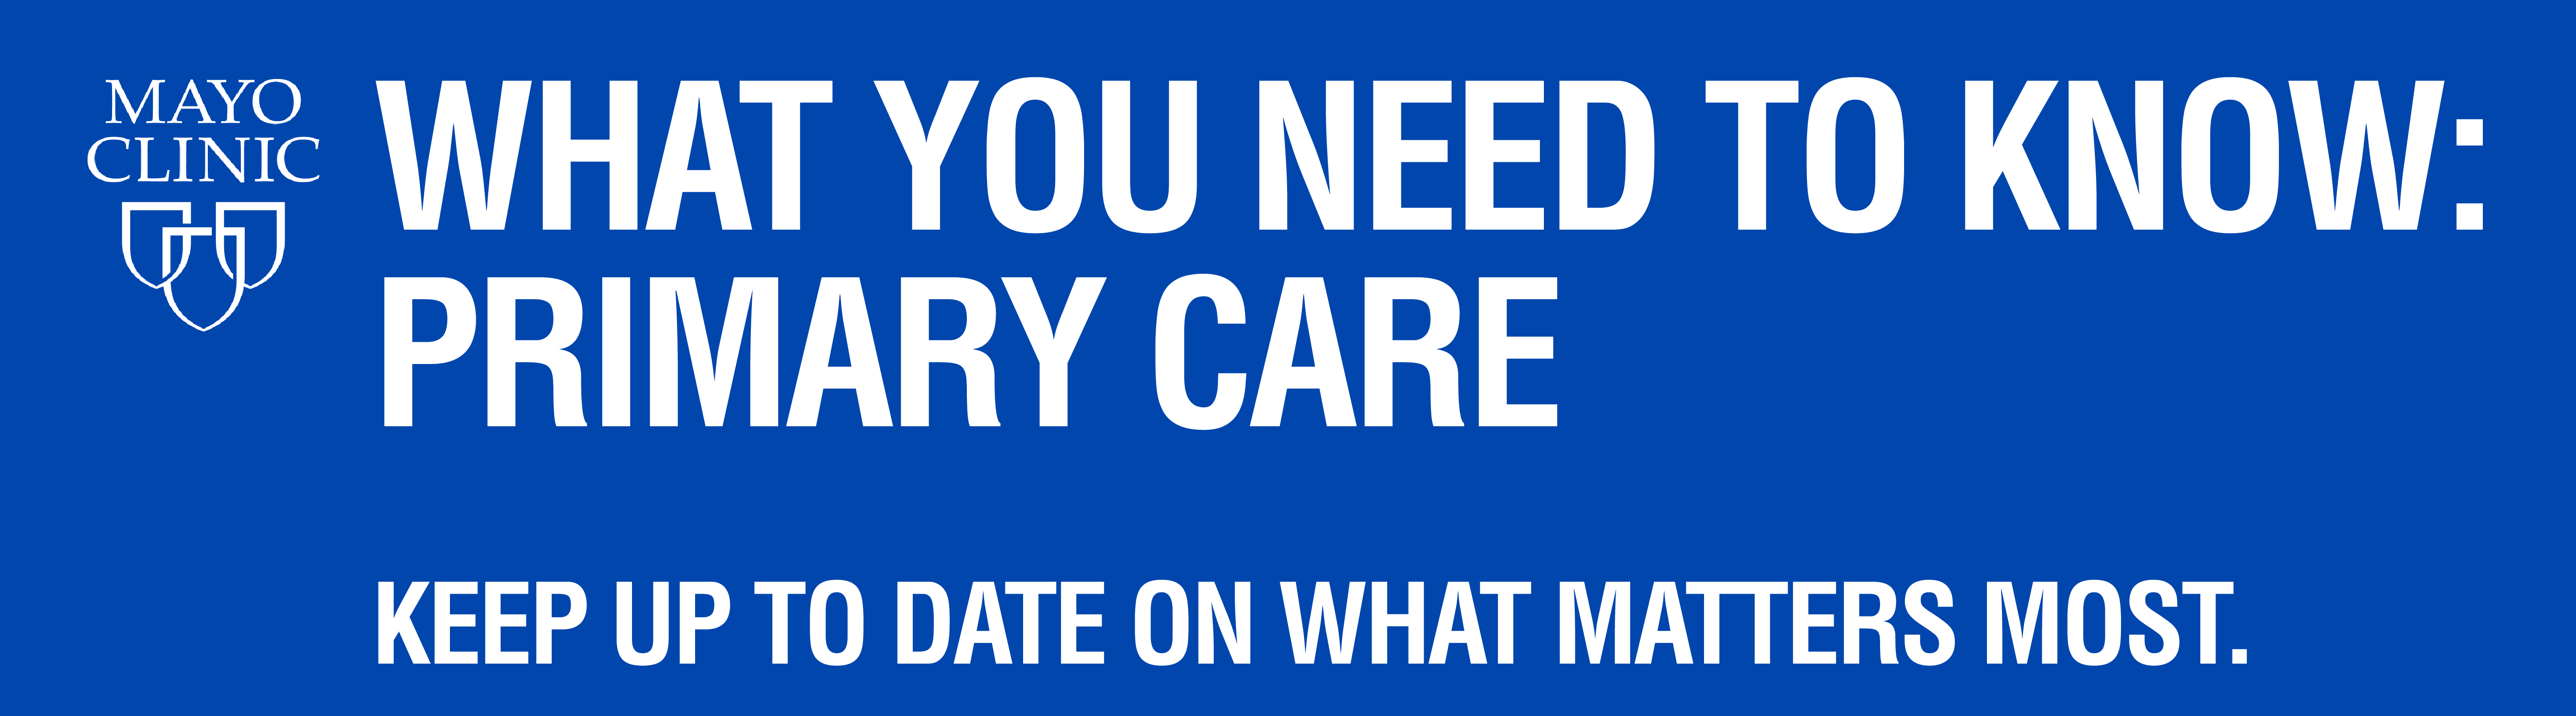 What You Need to Know: Primary Care